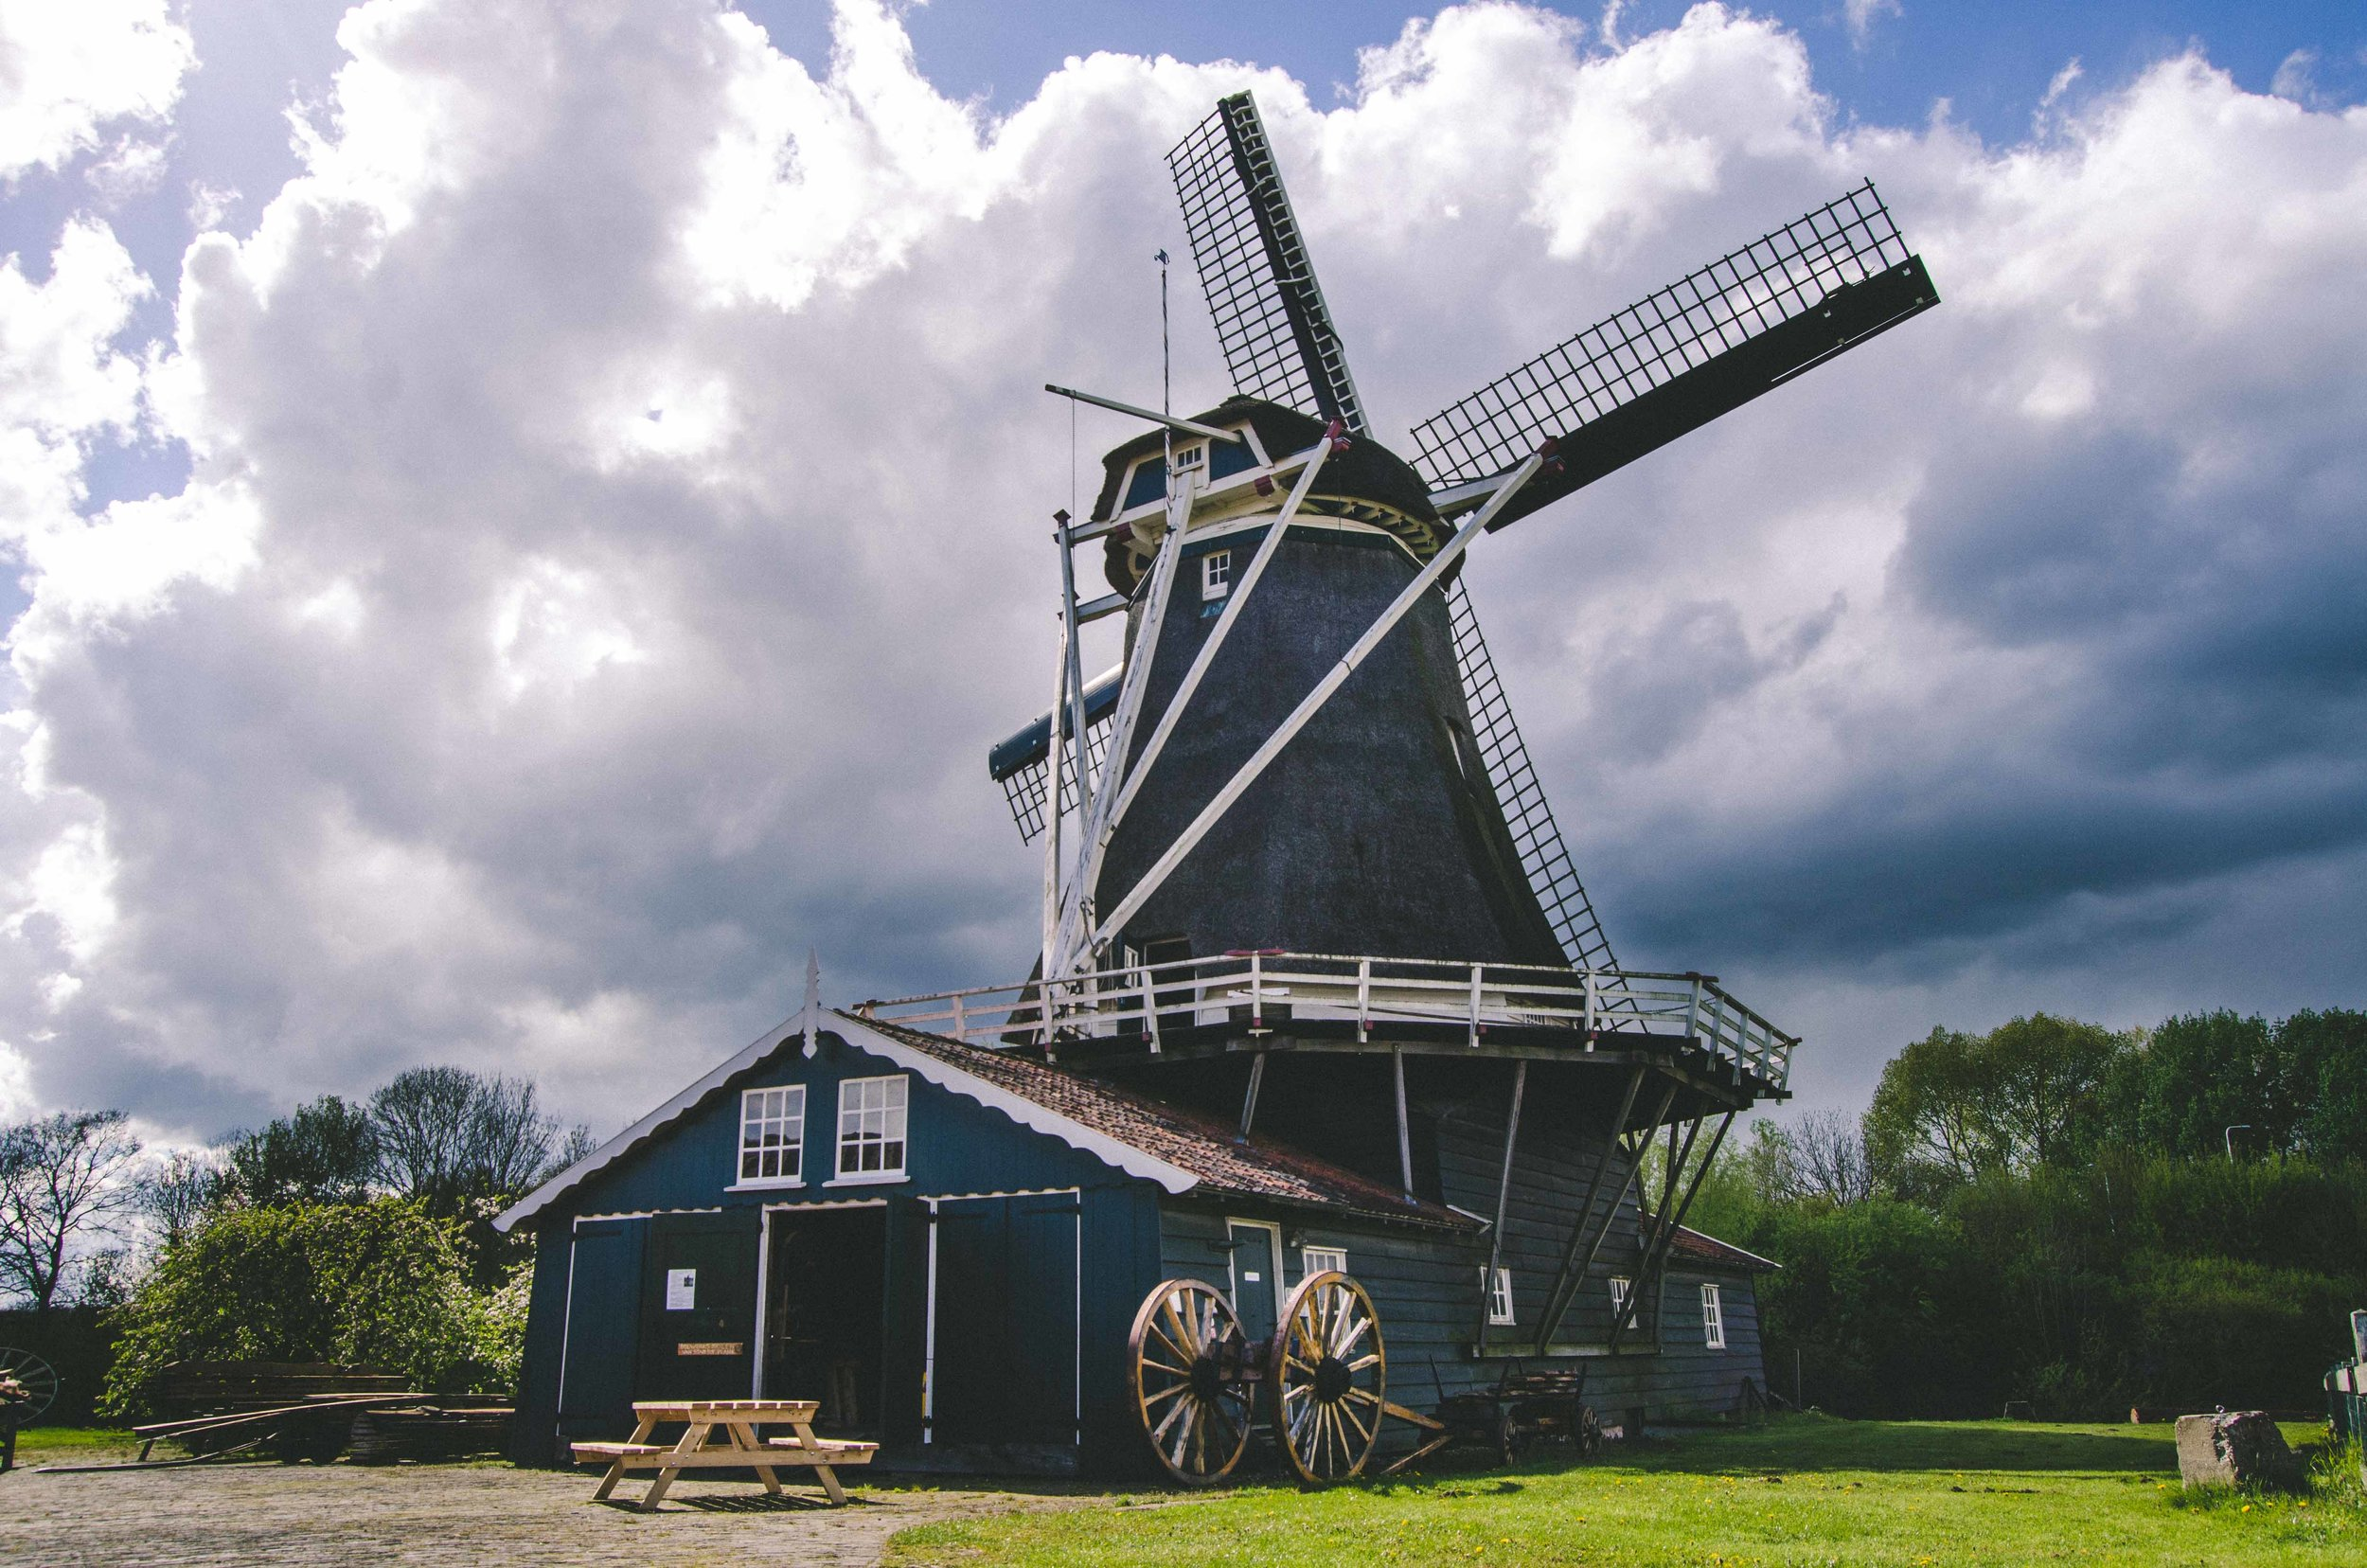 An old wind-powered sawmill that is still functional. A group of volunteers still work there and give tours each week.